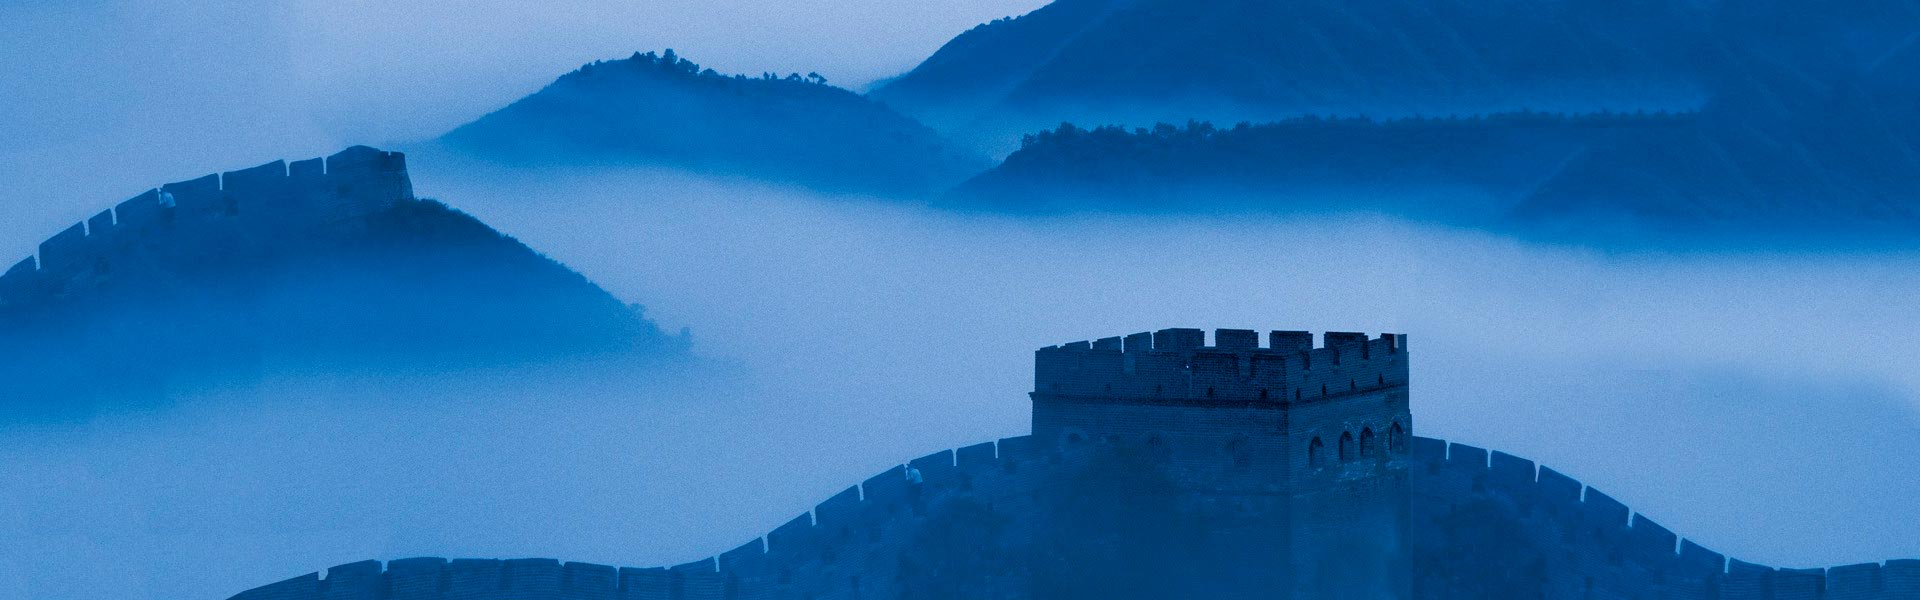 Incredible Great Wall Hiking Tours!